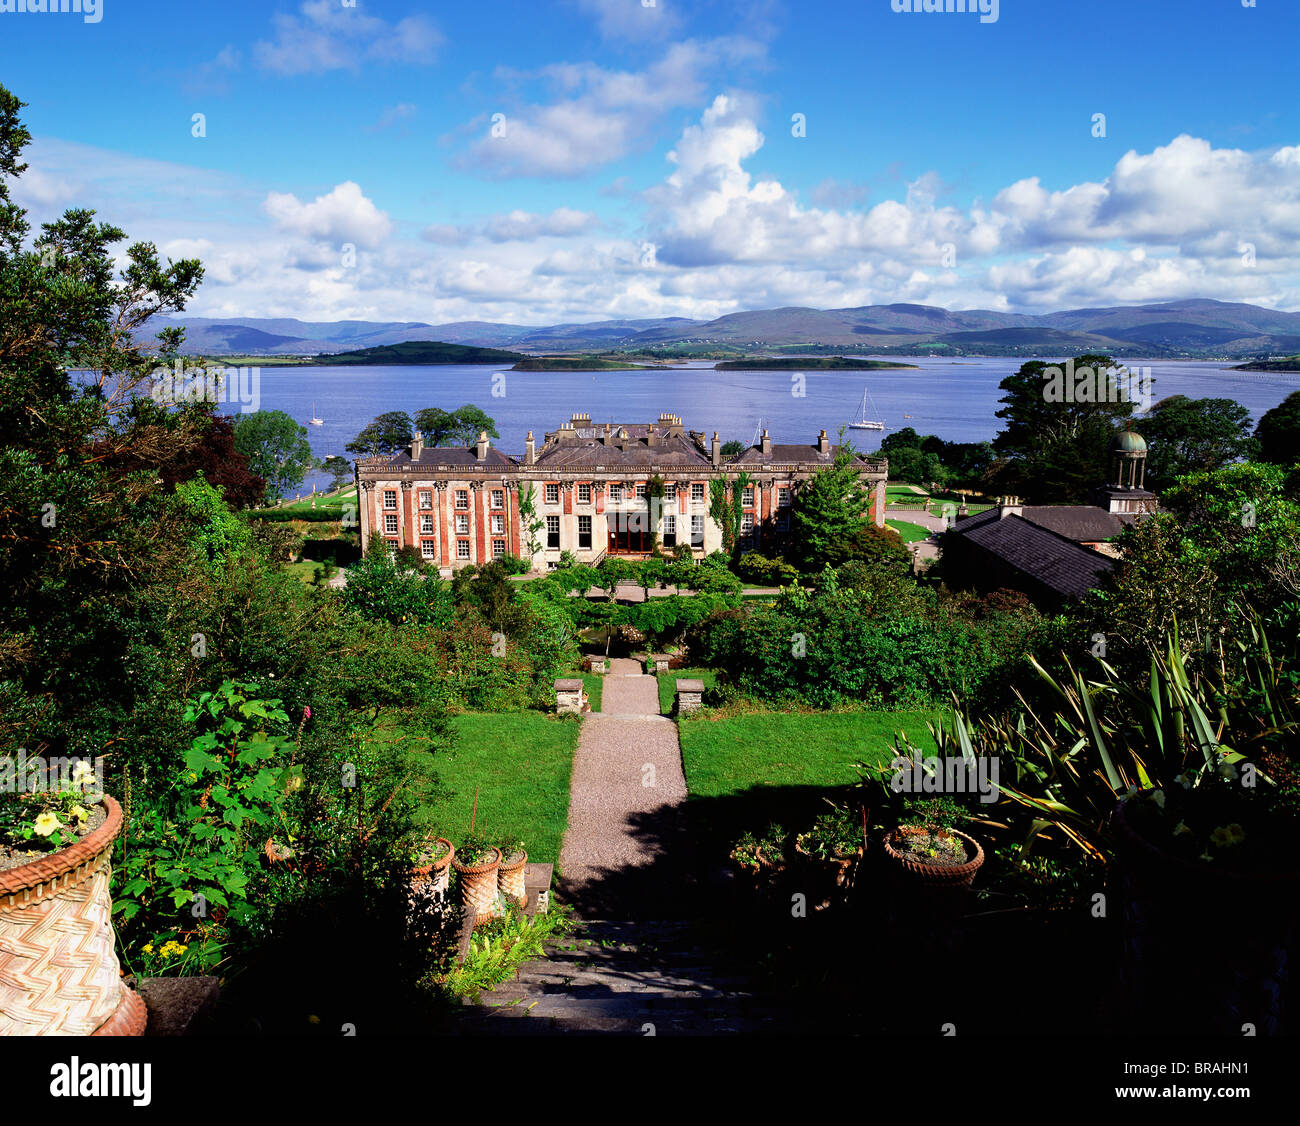 Bantry house county cork ireland stock photo royalty for Bantry house